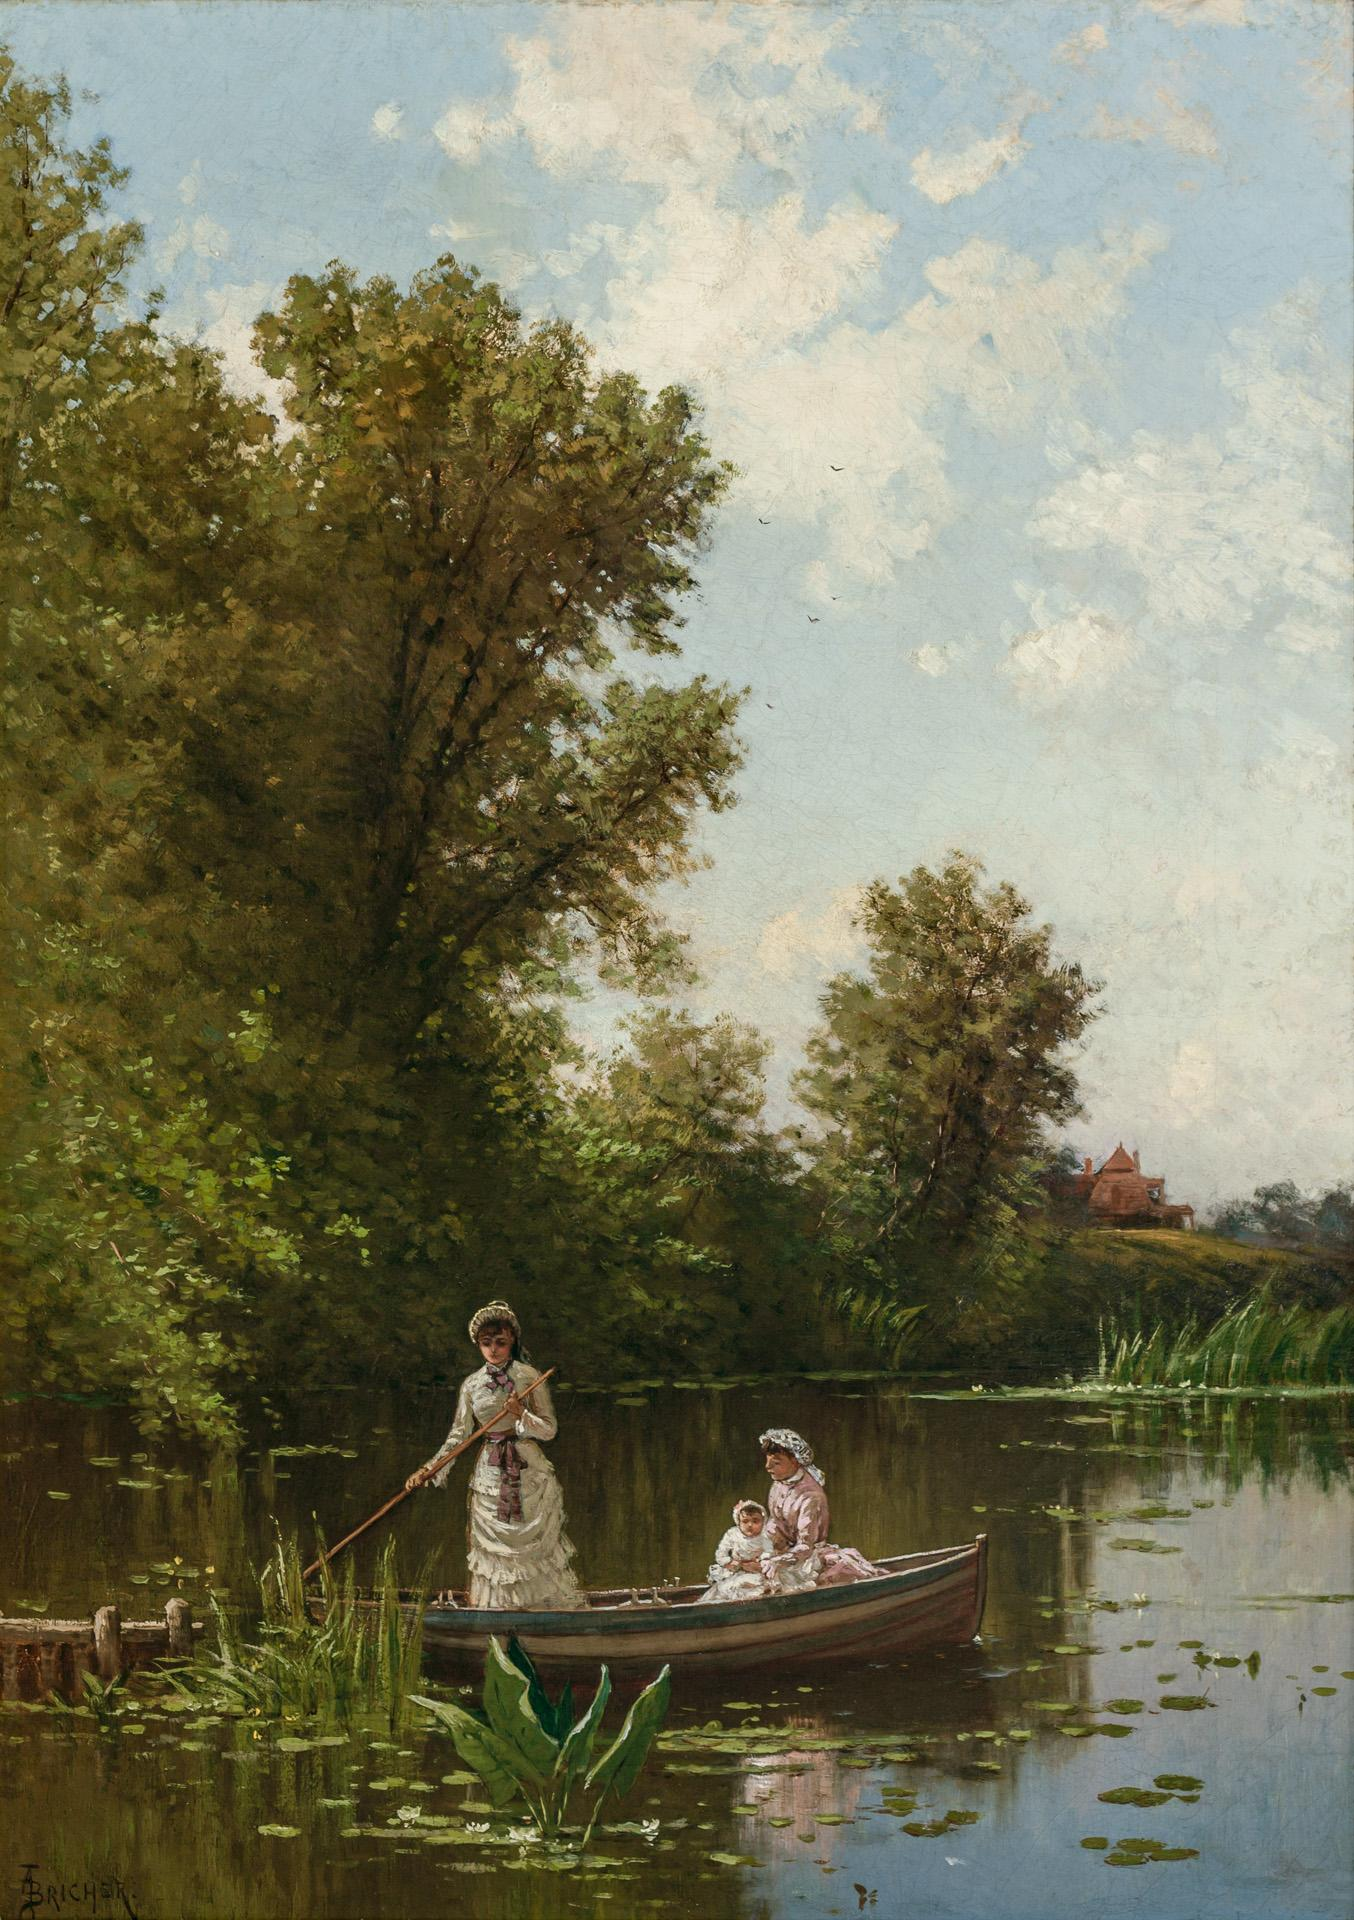 """ALFRED THOMPSON BRICHER, American (1837-1908), Boating in the Afternoon, Newburyport, oil on canvas, signed lower left """"A.T. Bricher..."""